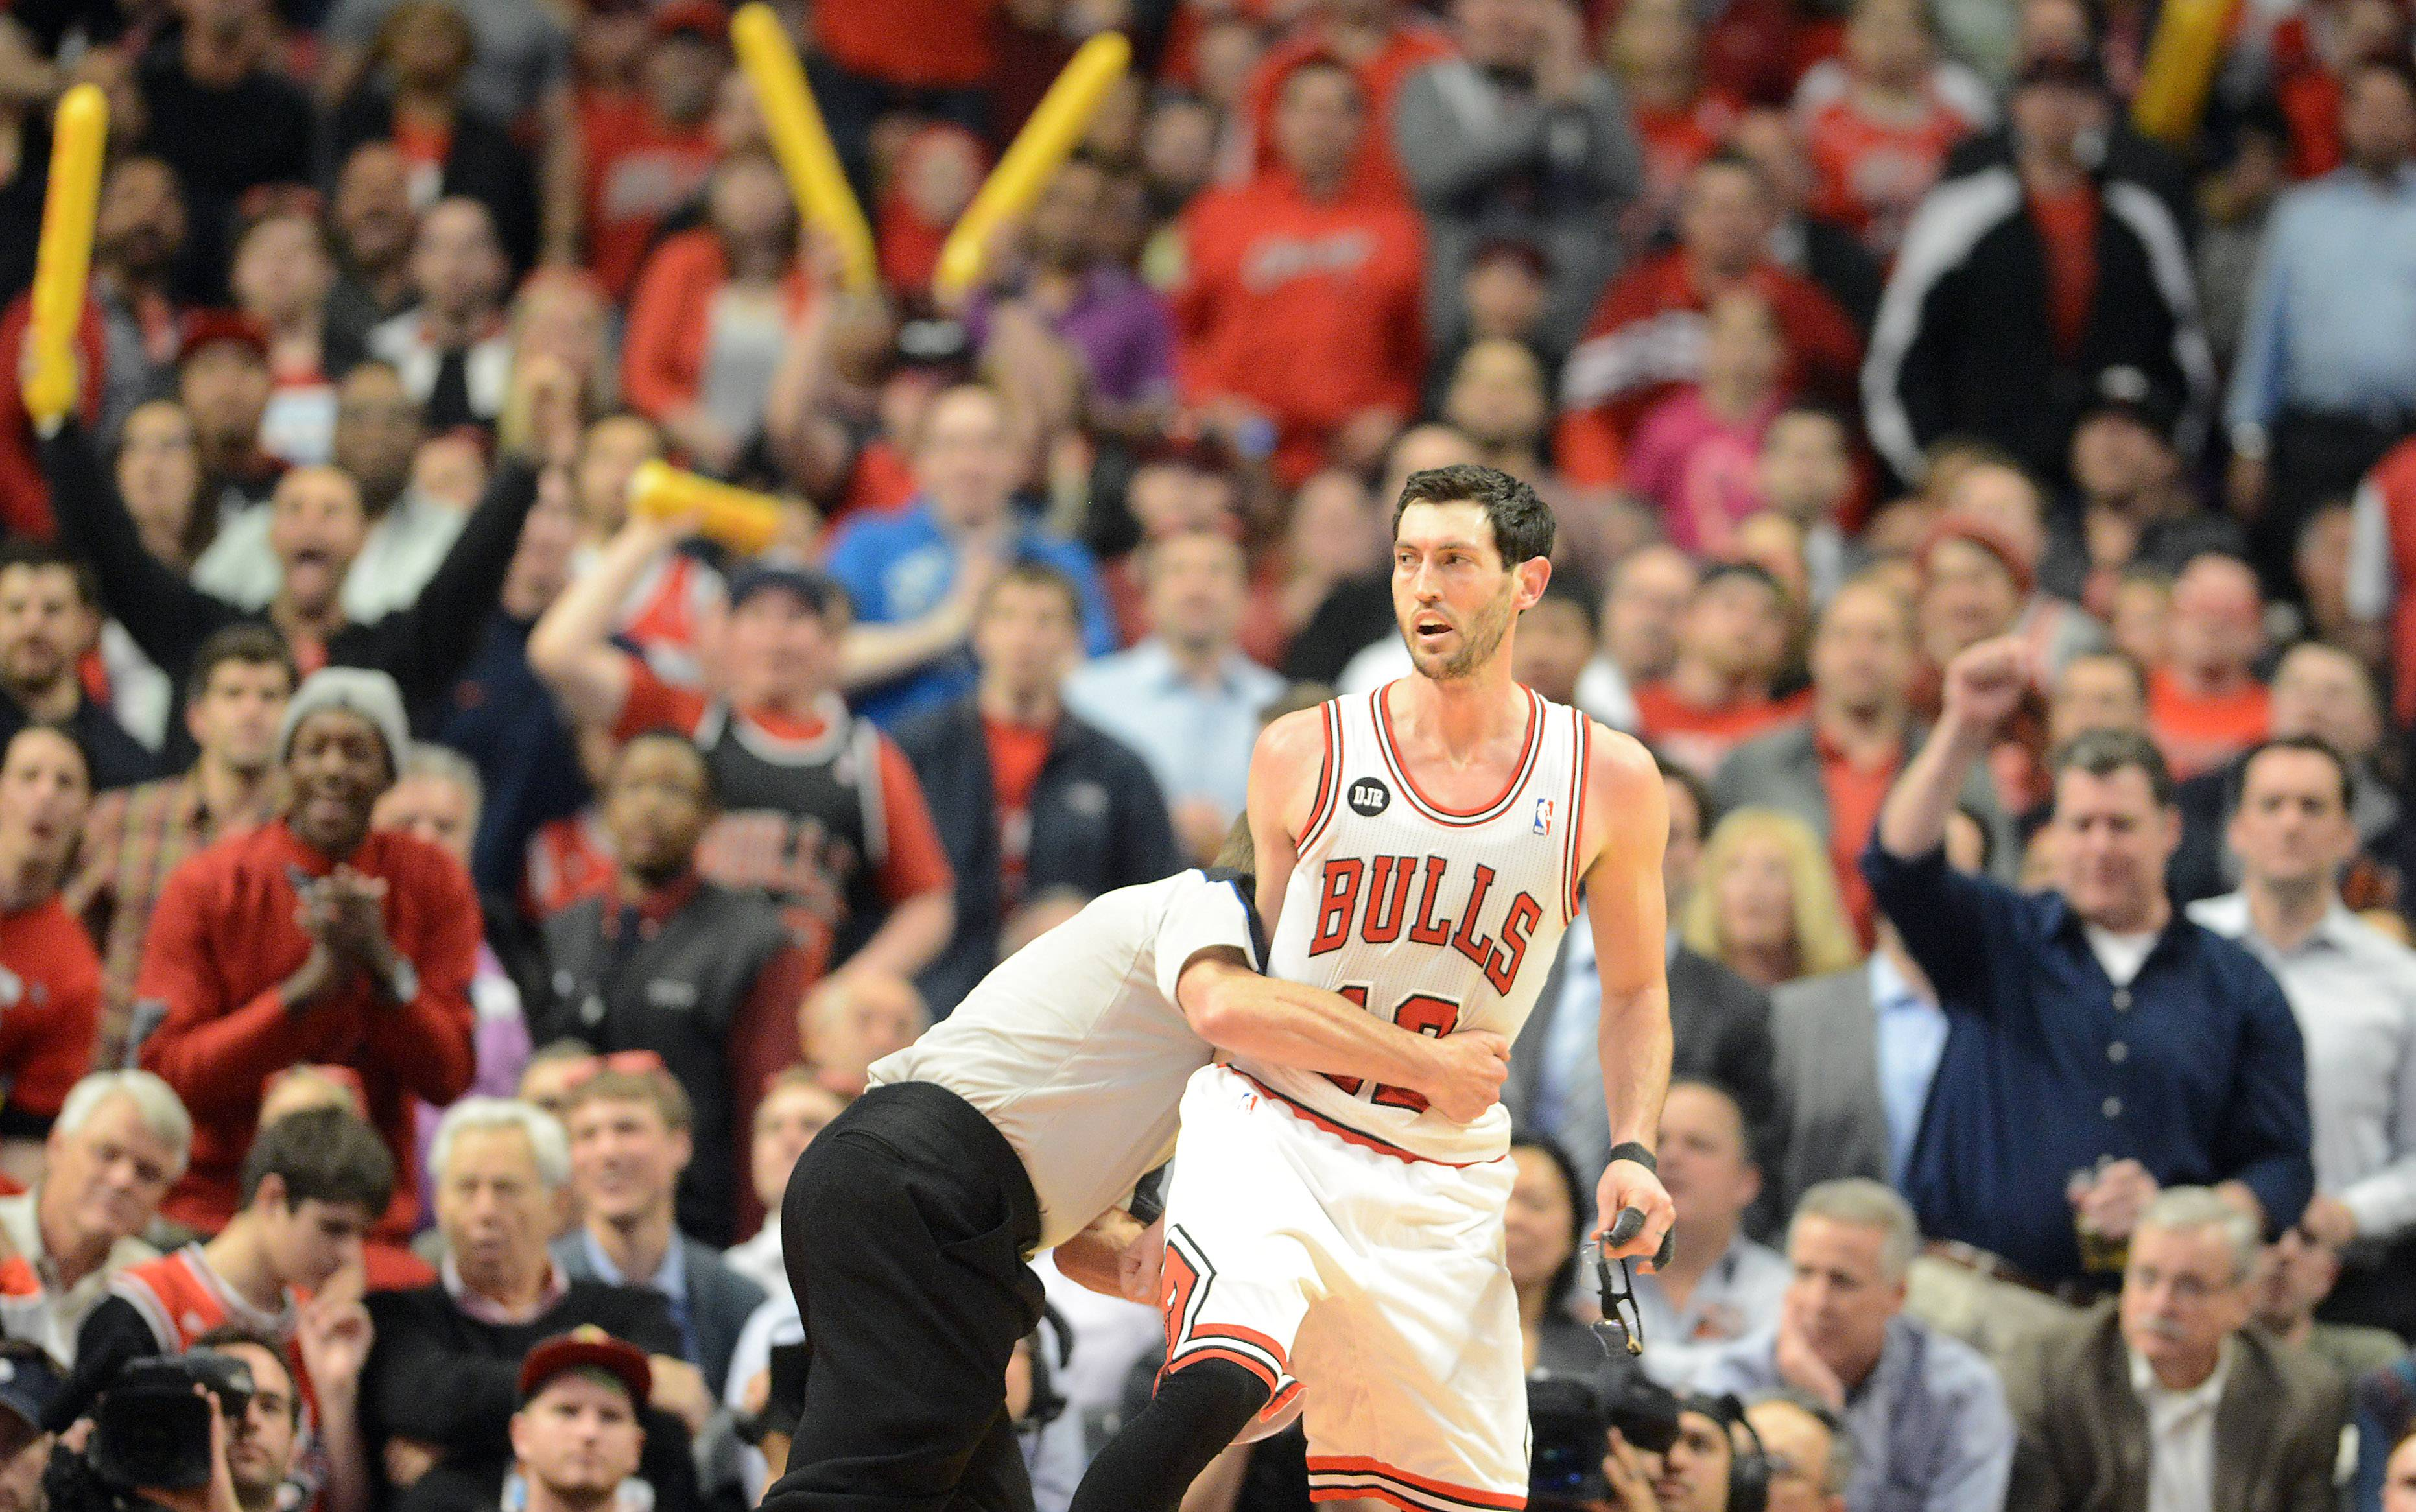 Bulls guard Kirk Hinrich (12) is pulled back by official Bill Spooner after he got into it with Washington Wizards guard Bradley Beal (3) during Tuesday's game at the United Center in Chicago.